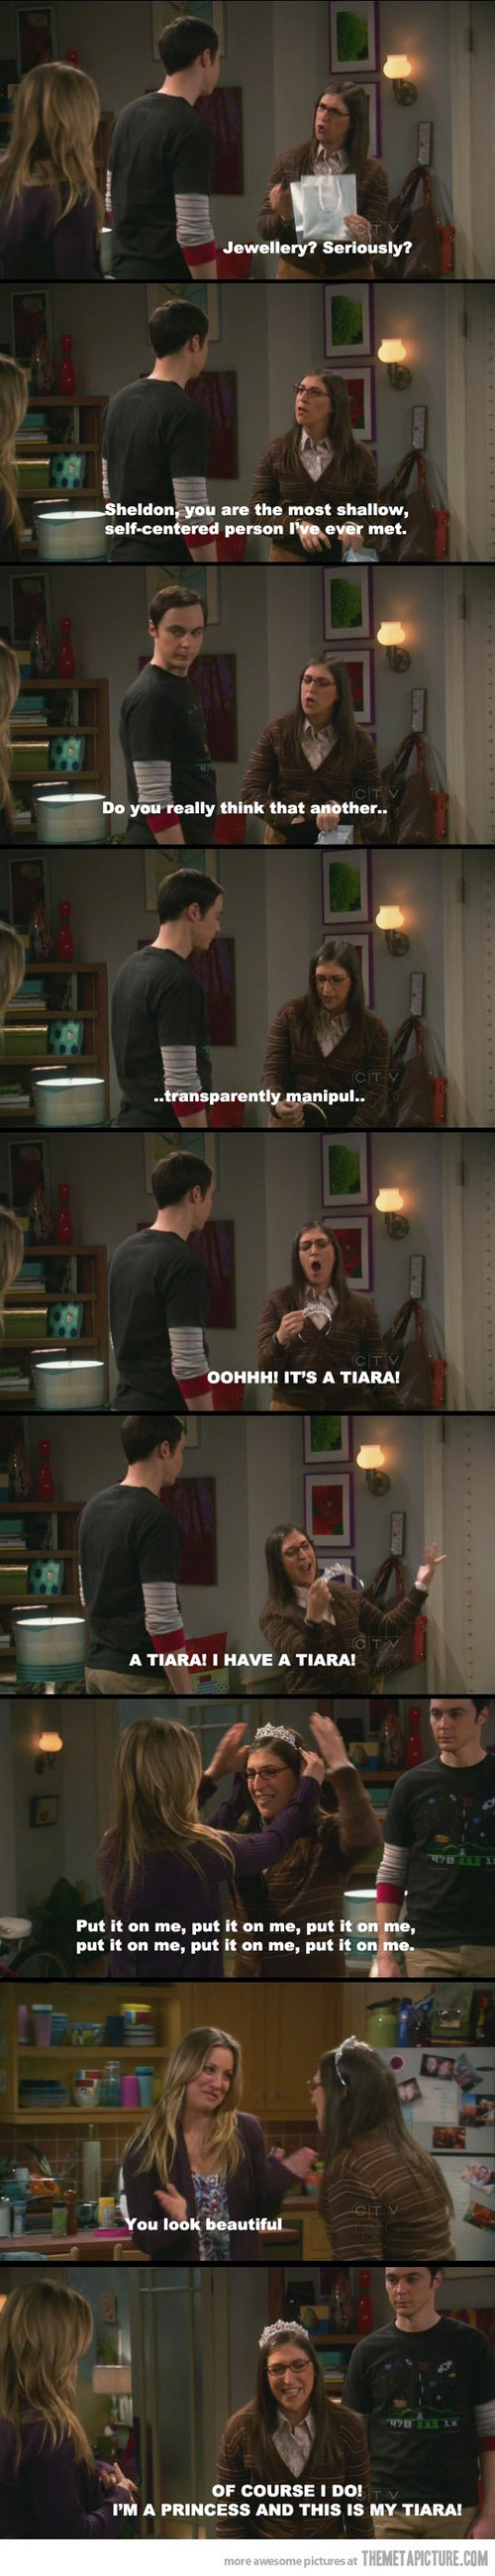 Funny-big-bang-theory-tiara-scene_large